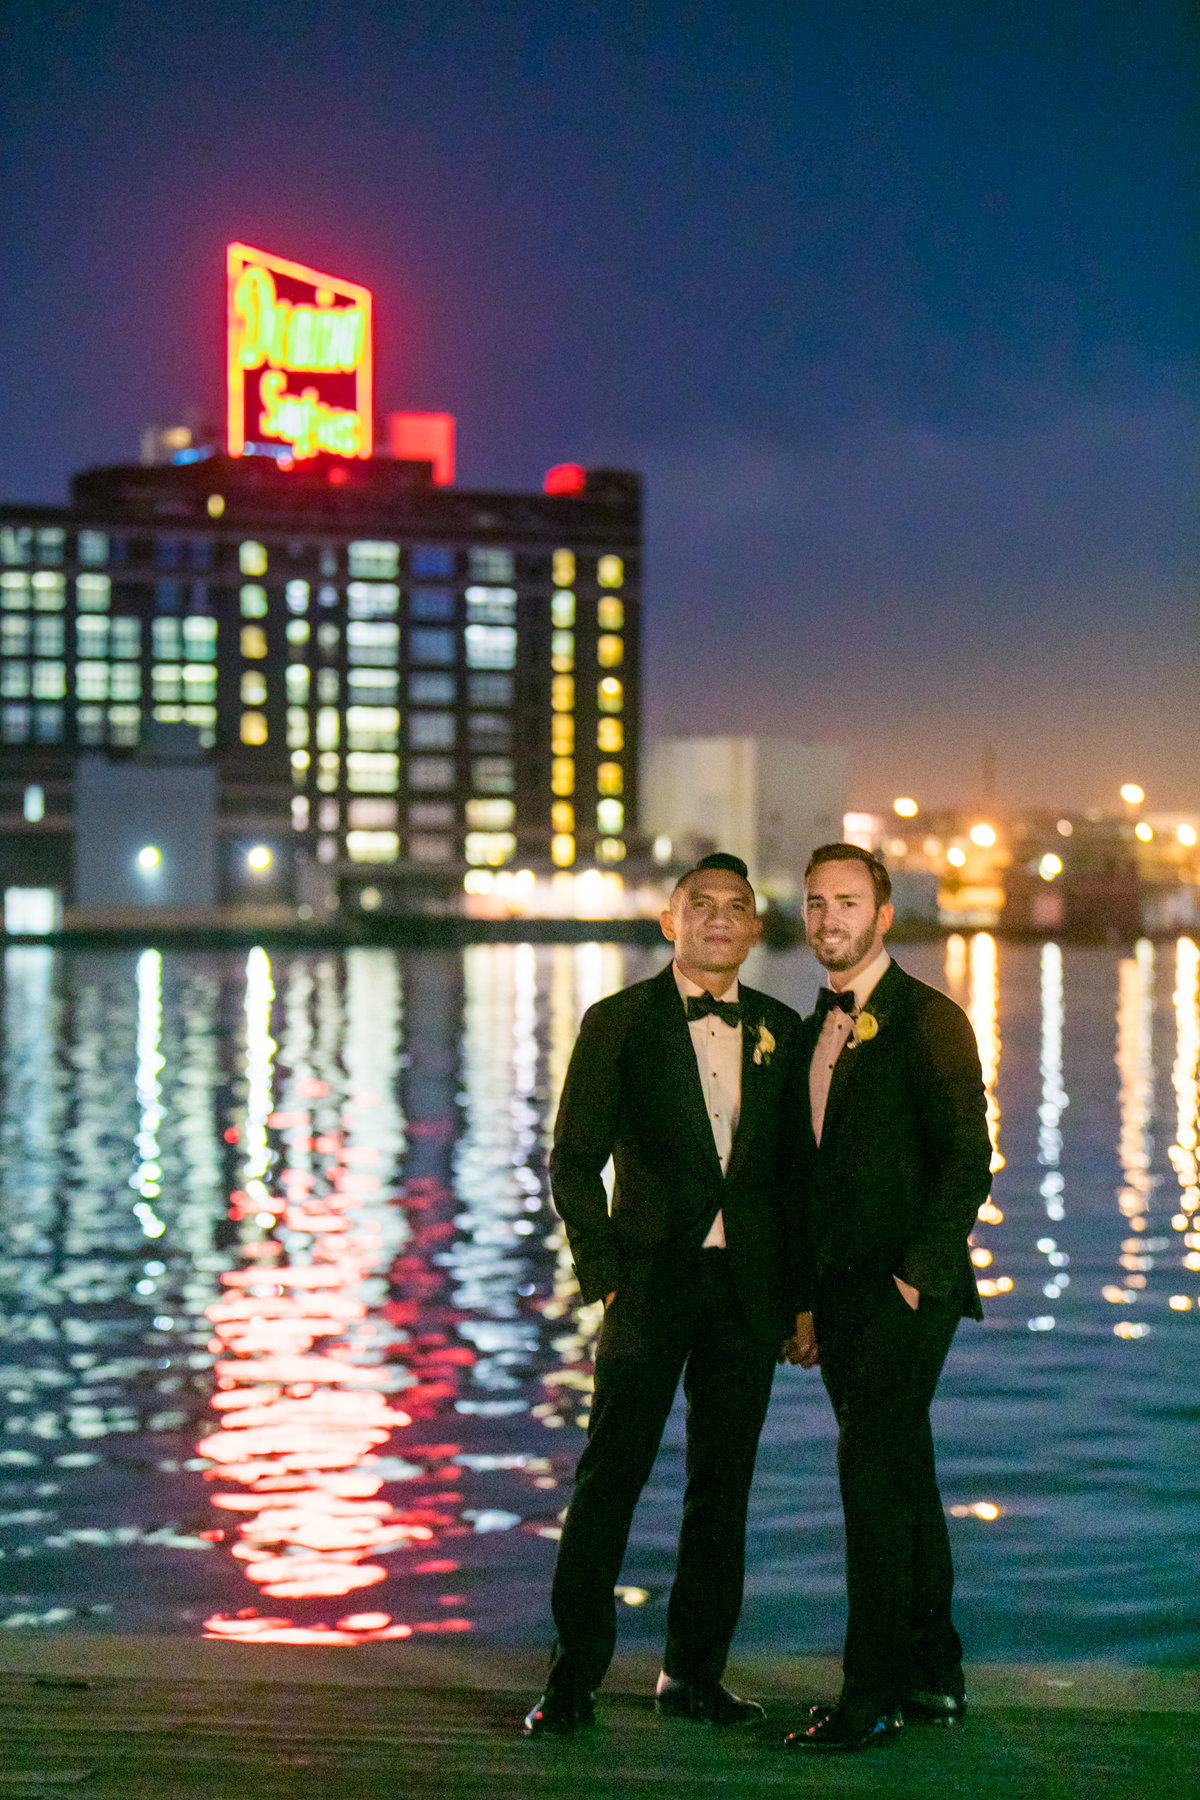 Gay Groom Domino Sugar Sign in Baltimore wedding